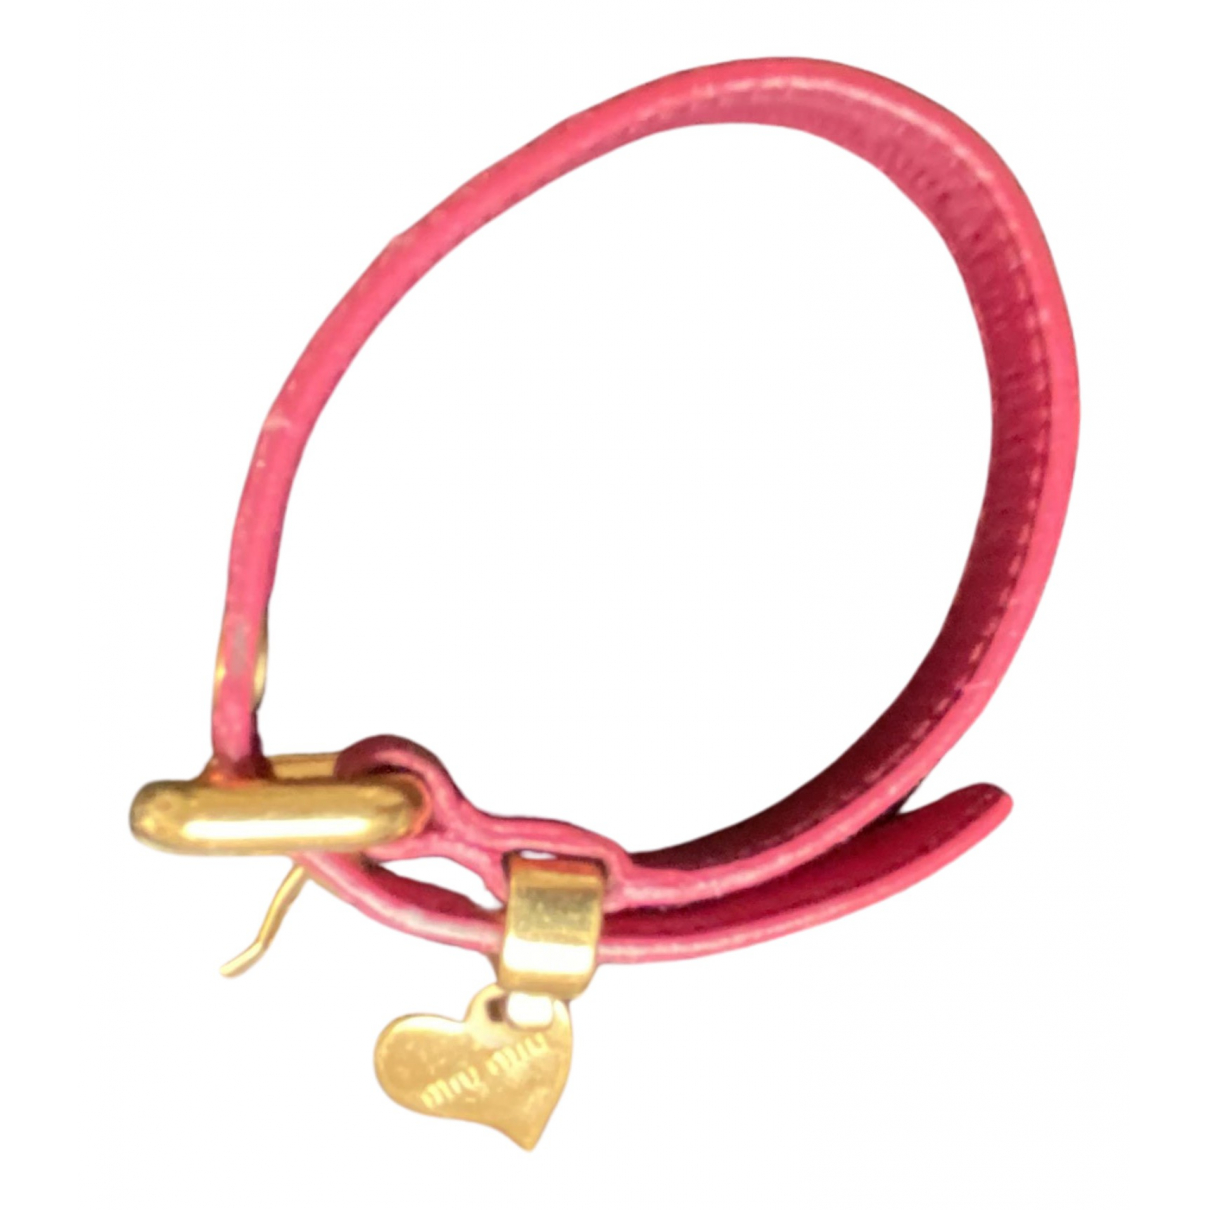 Miu Miu N Pink Leather bracelet for Women N